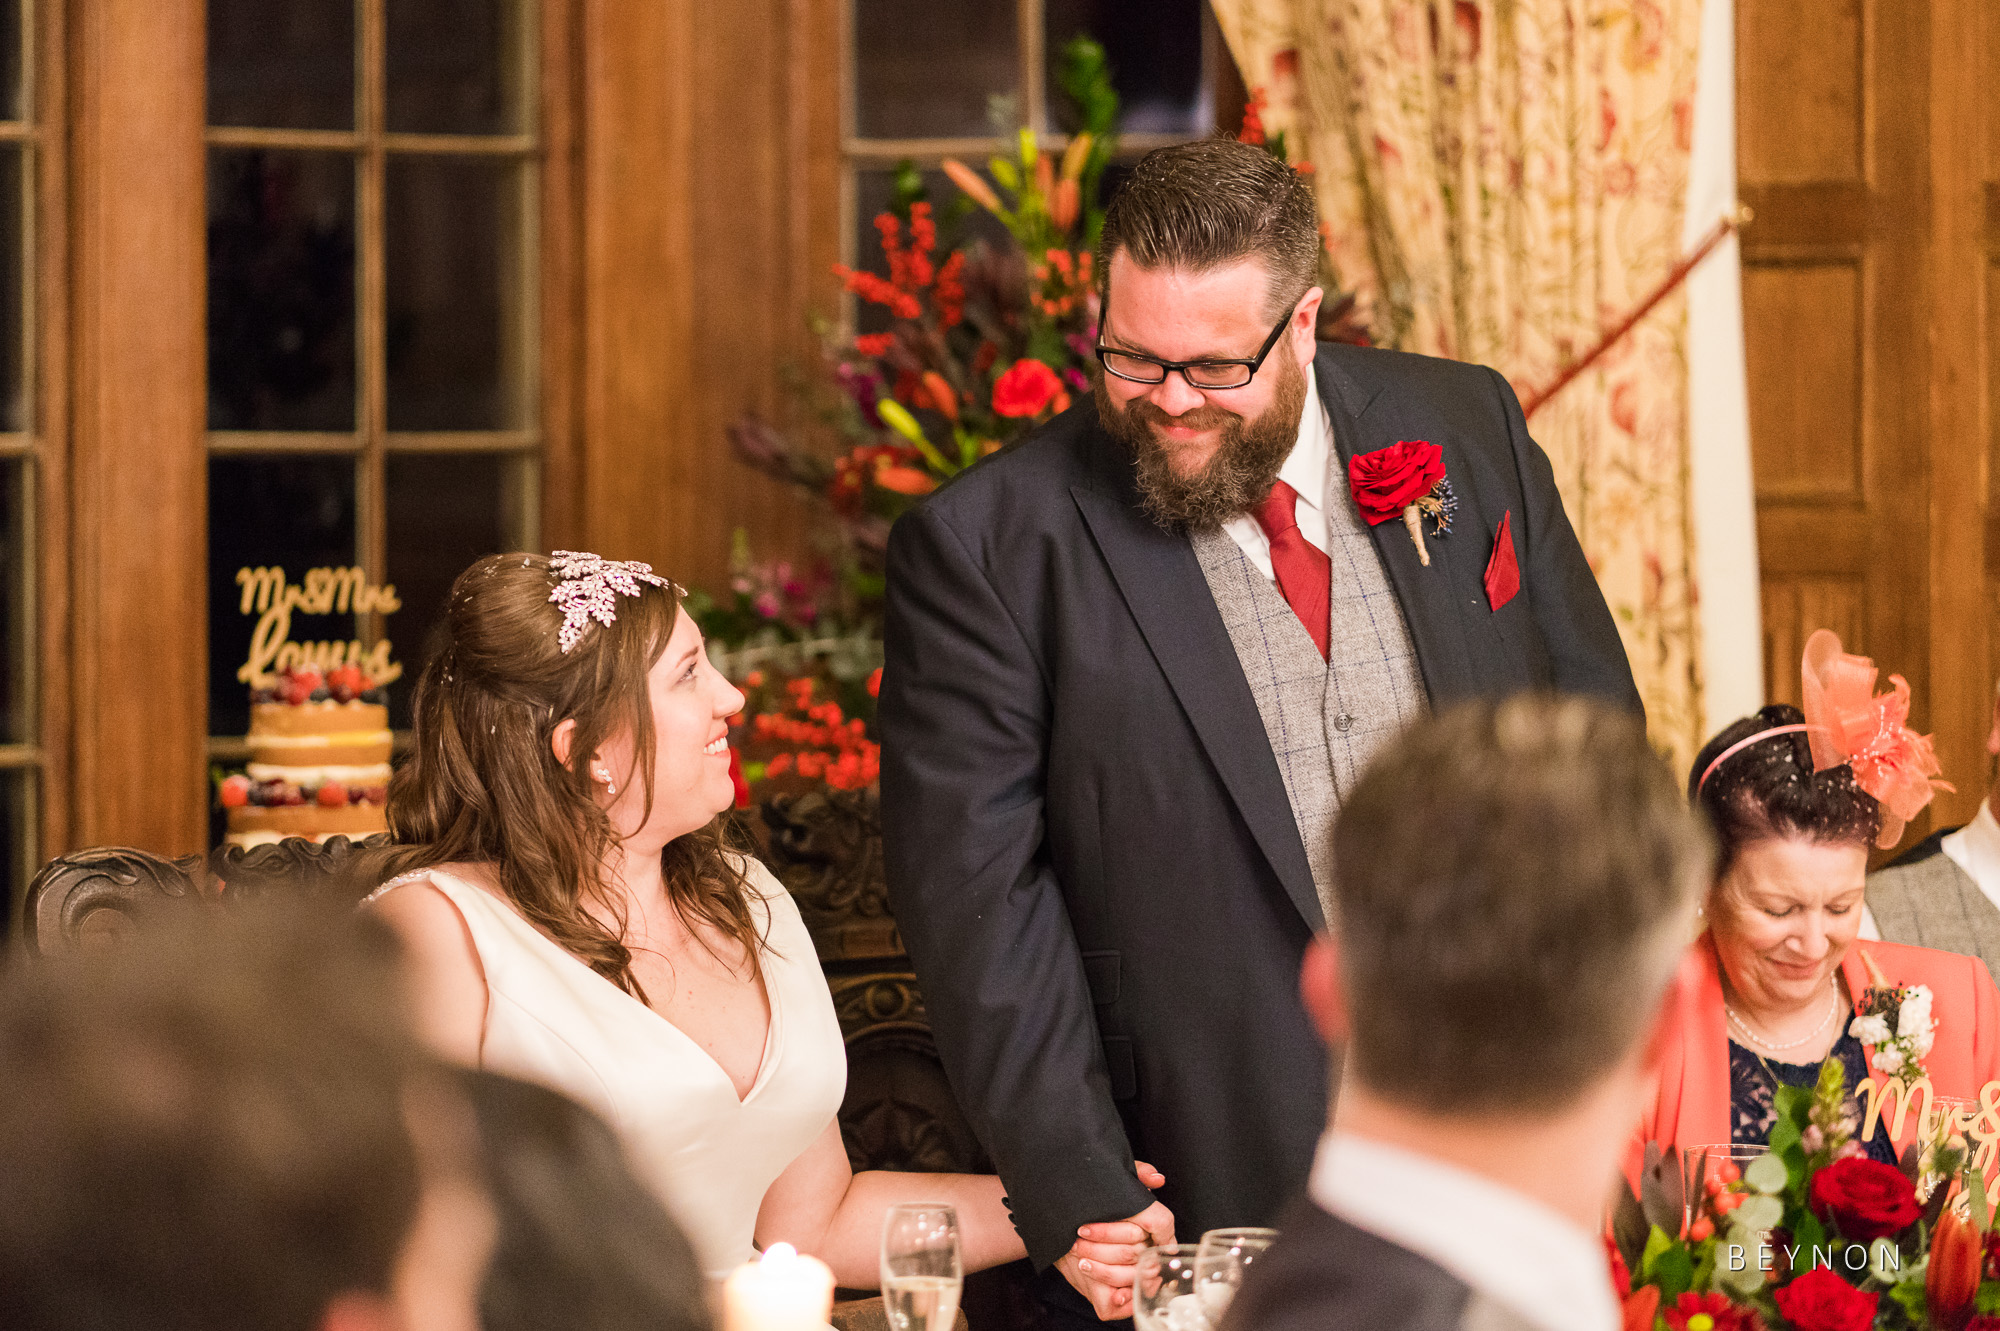 The Bride and Groom hold hands during his speech